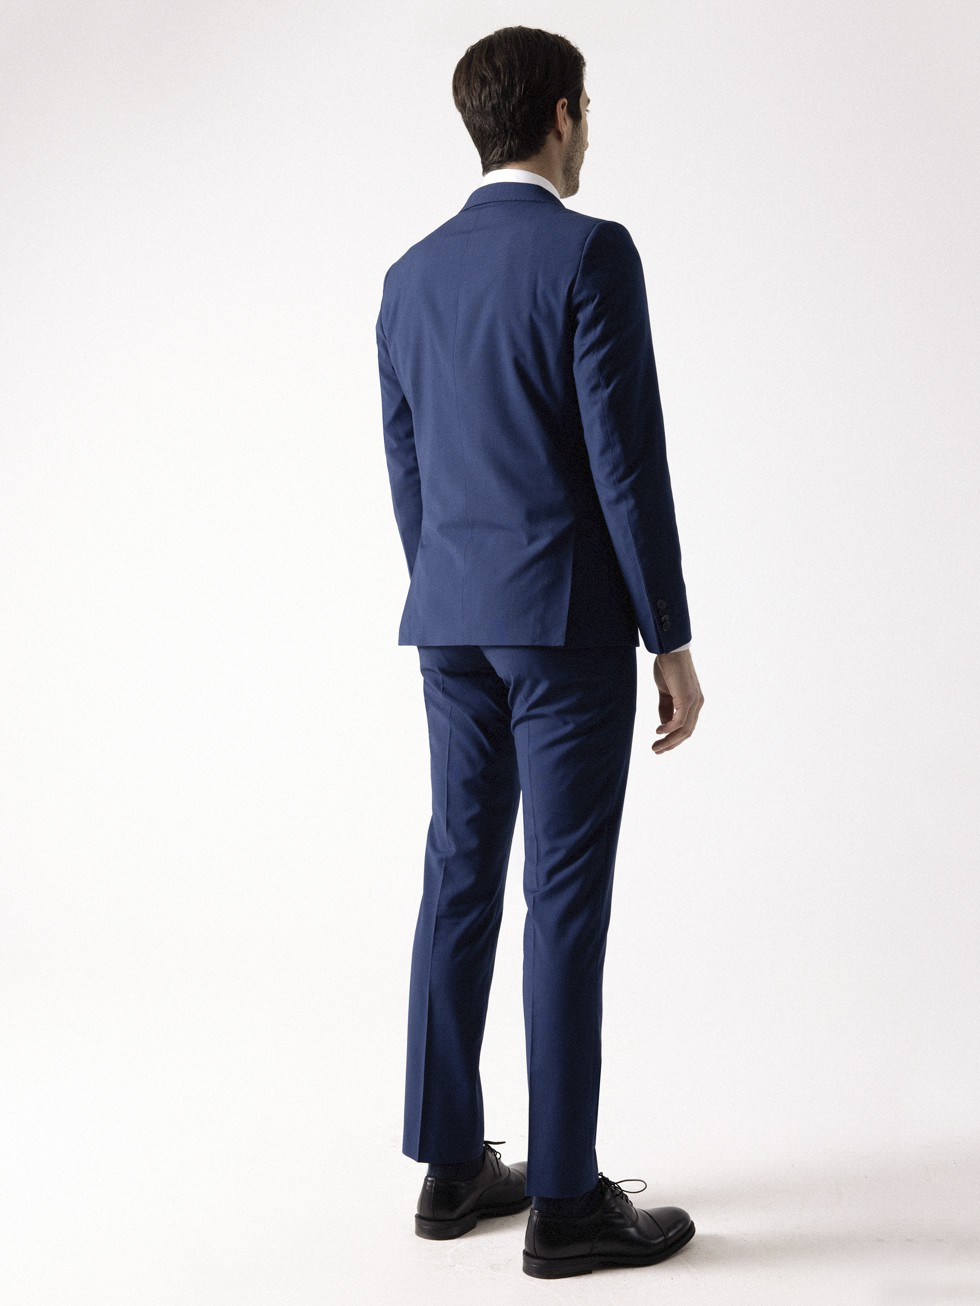 MICRO-TATTERSALL PLAID INK BLUE SUIT